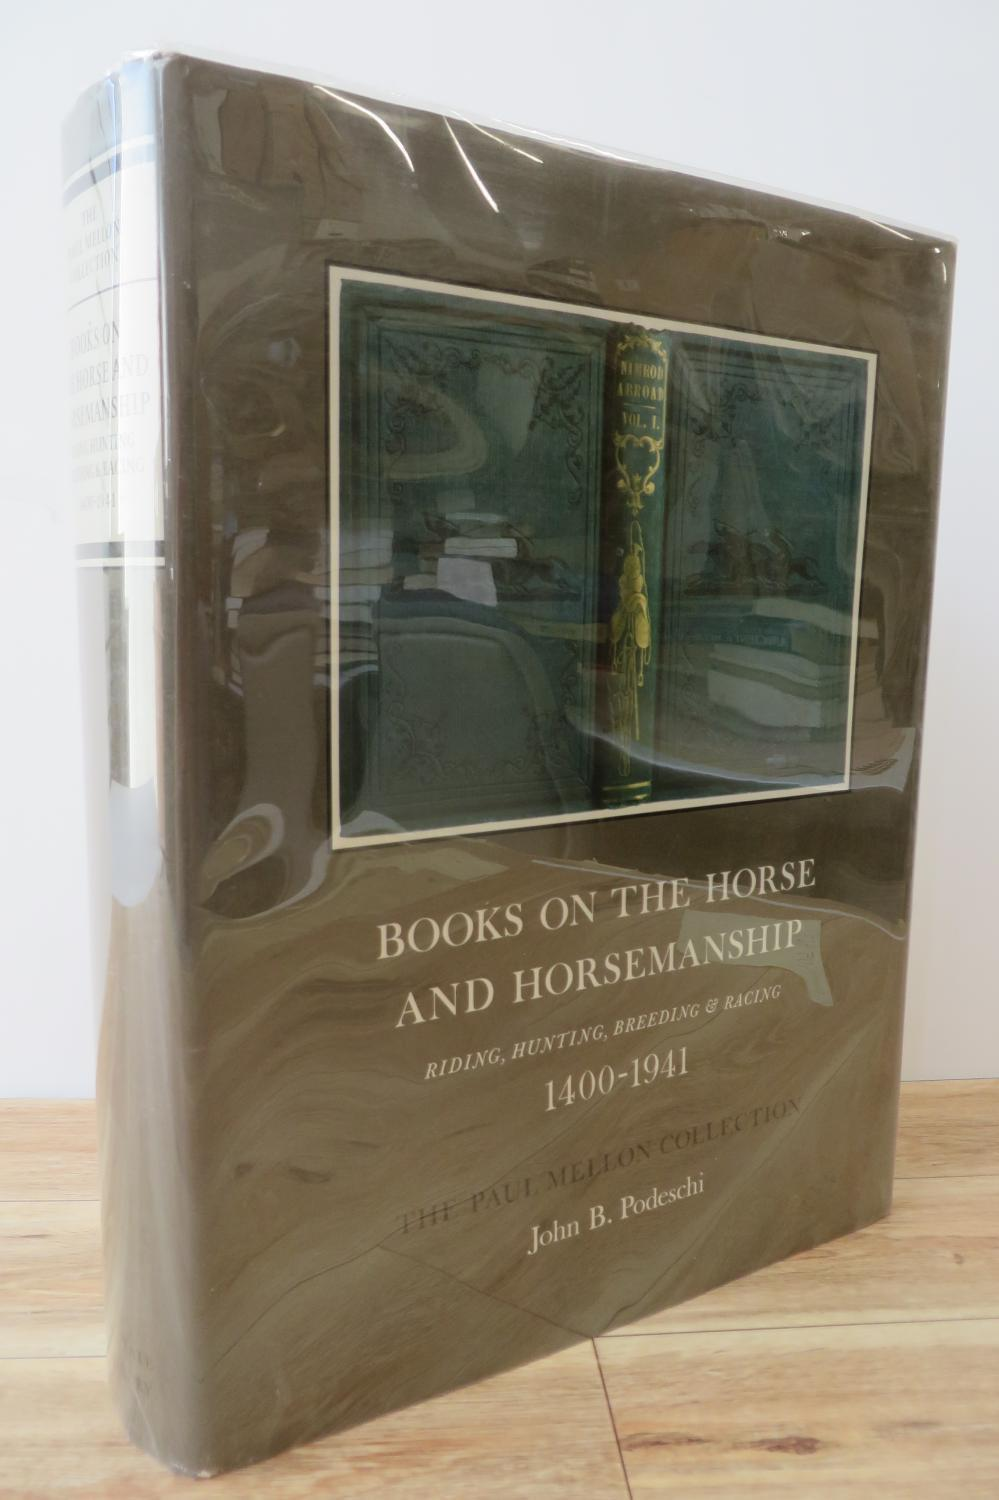 Books on the Horse and Horsemanship: Riding, Hunting, Breeding, & Racing 1400-1941. The Paul Mellon Collection